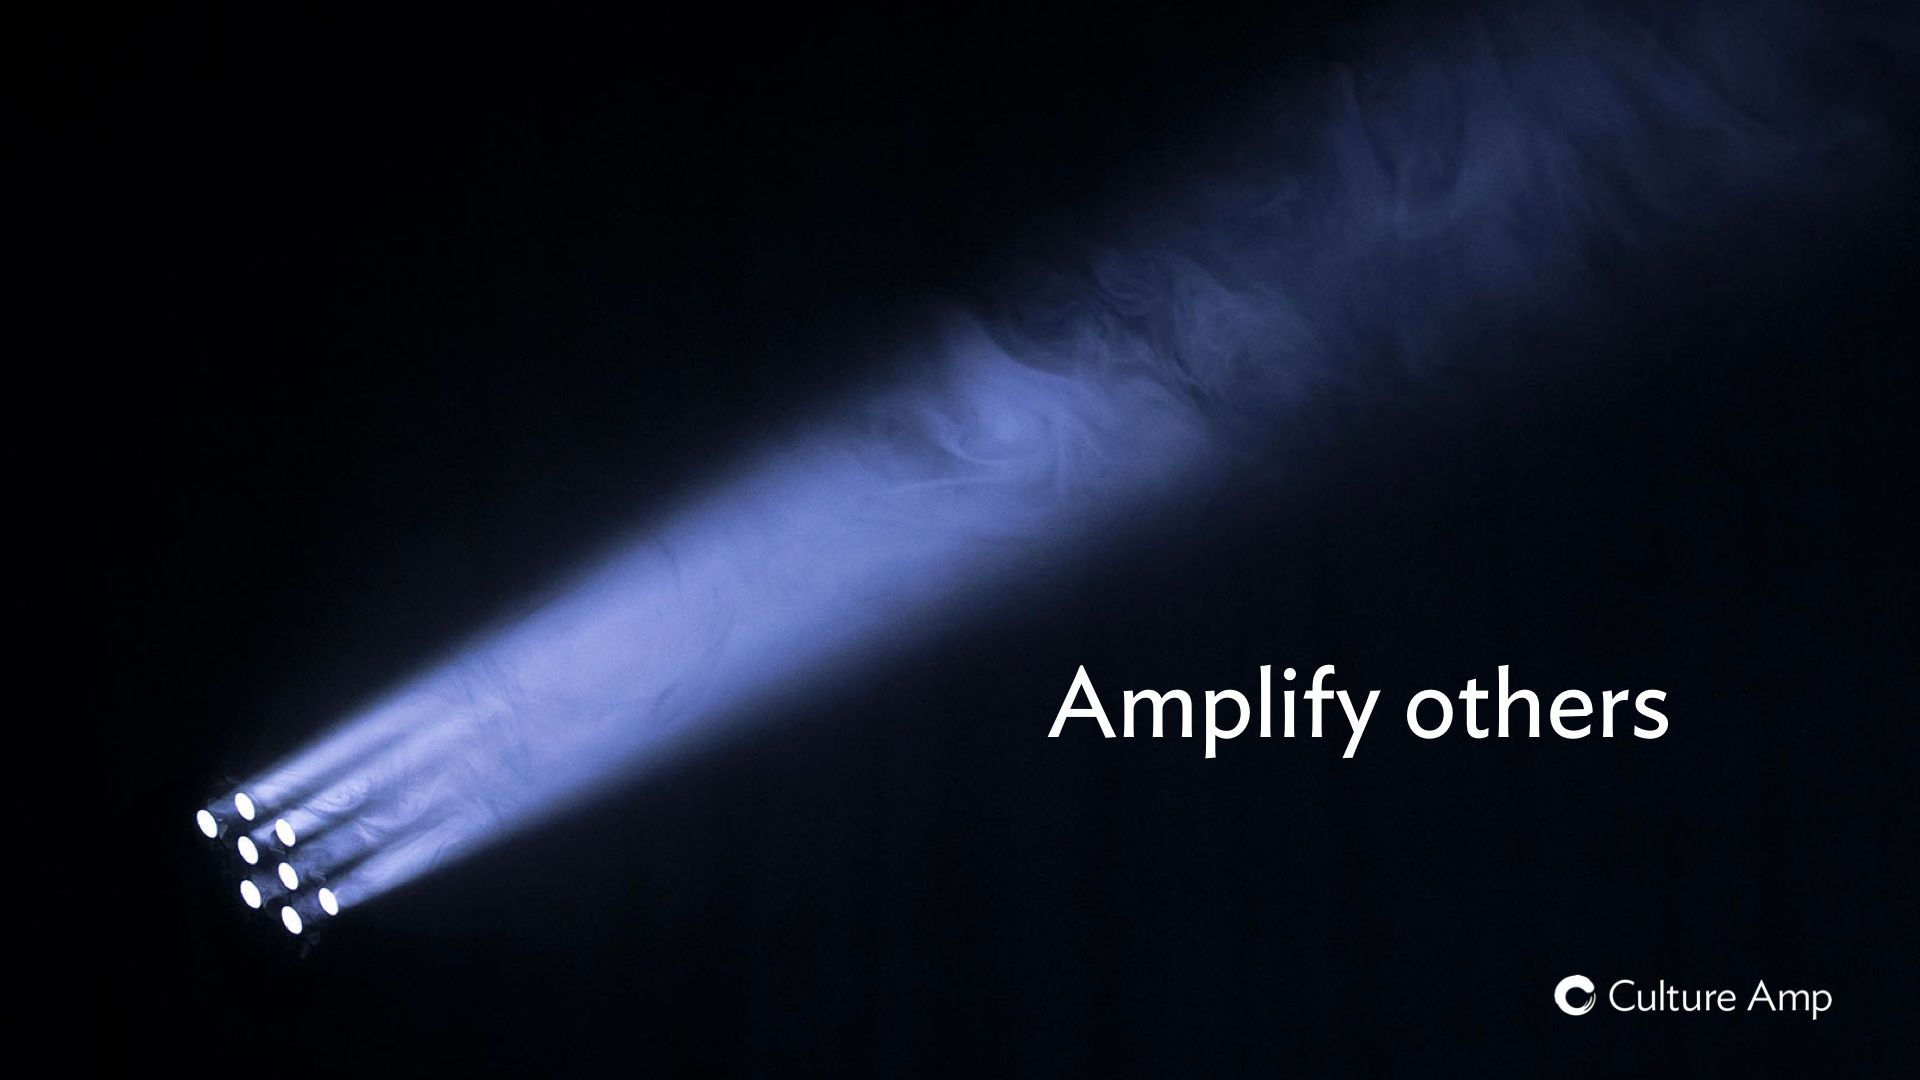 Amplify others